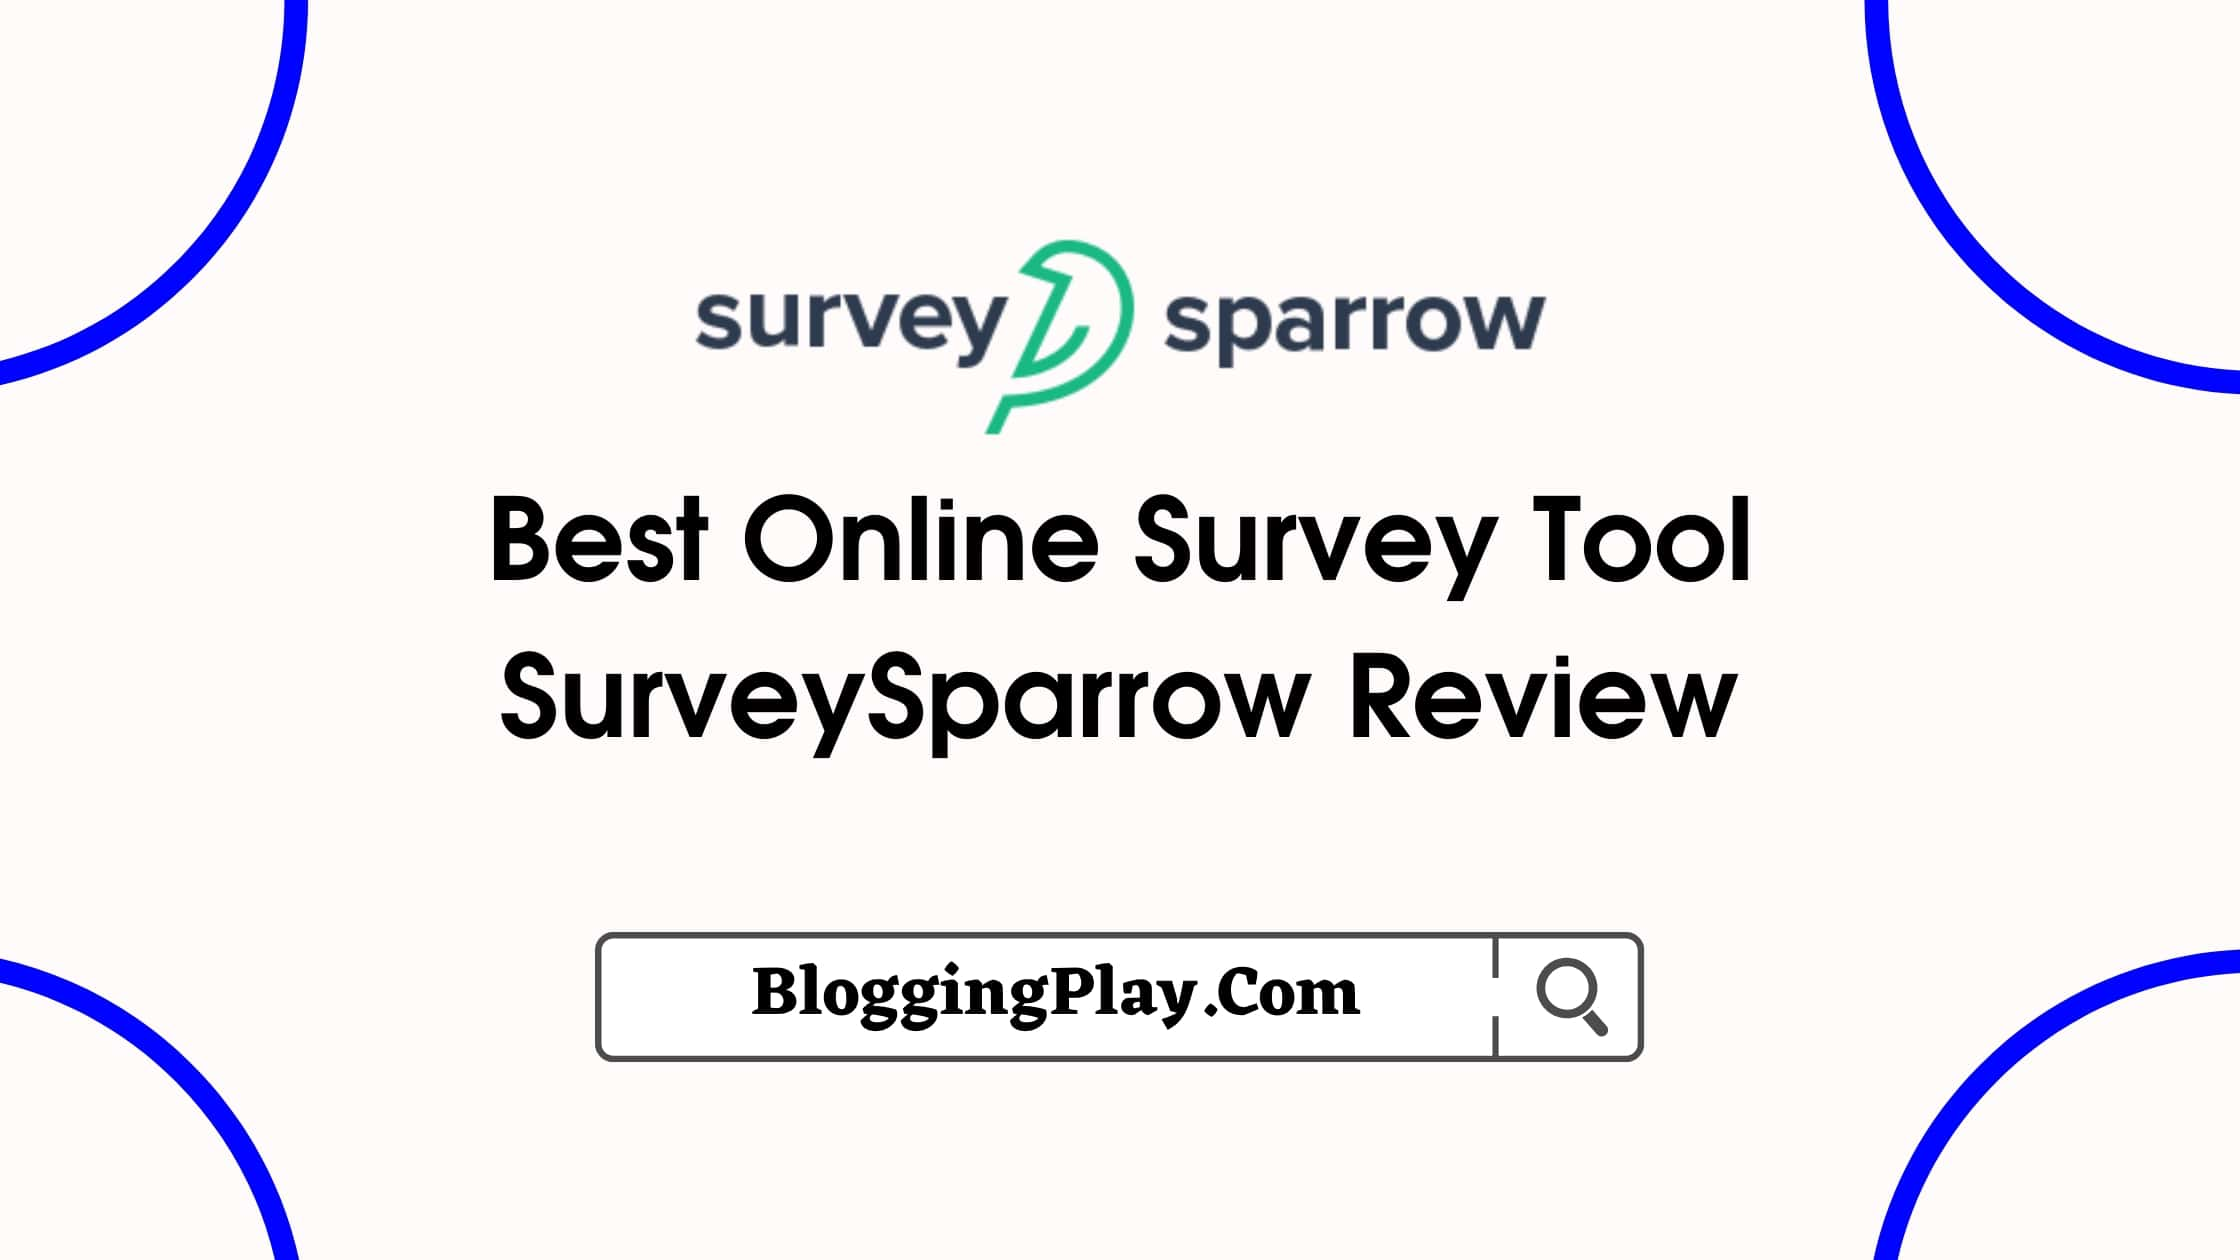 SurveySparrow Reviews